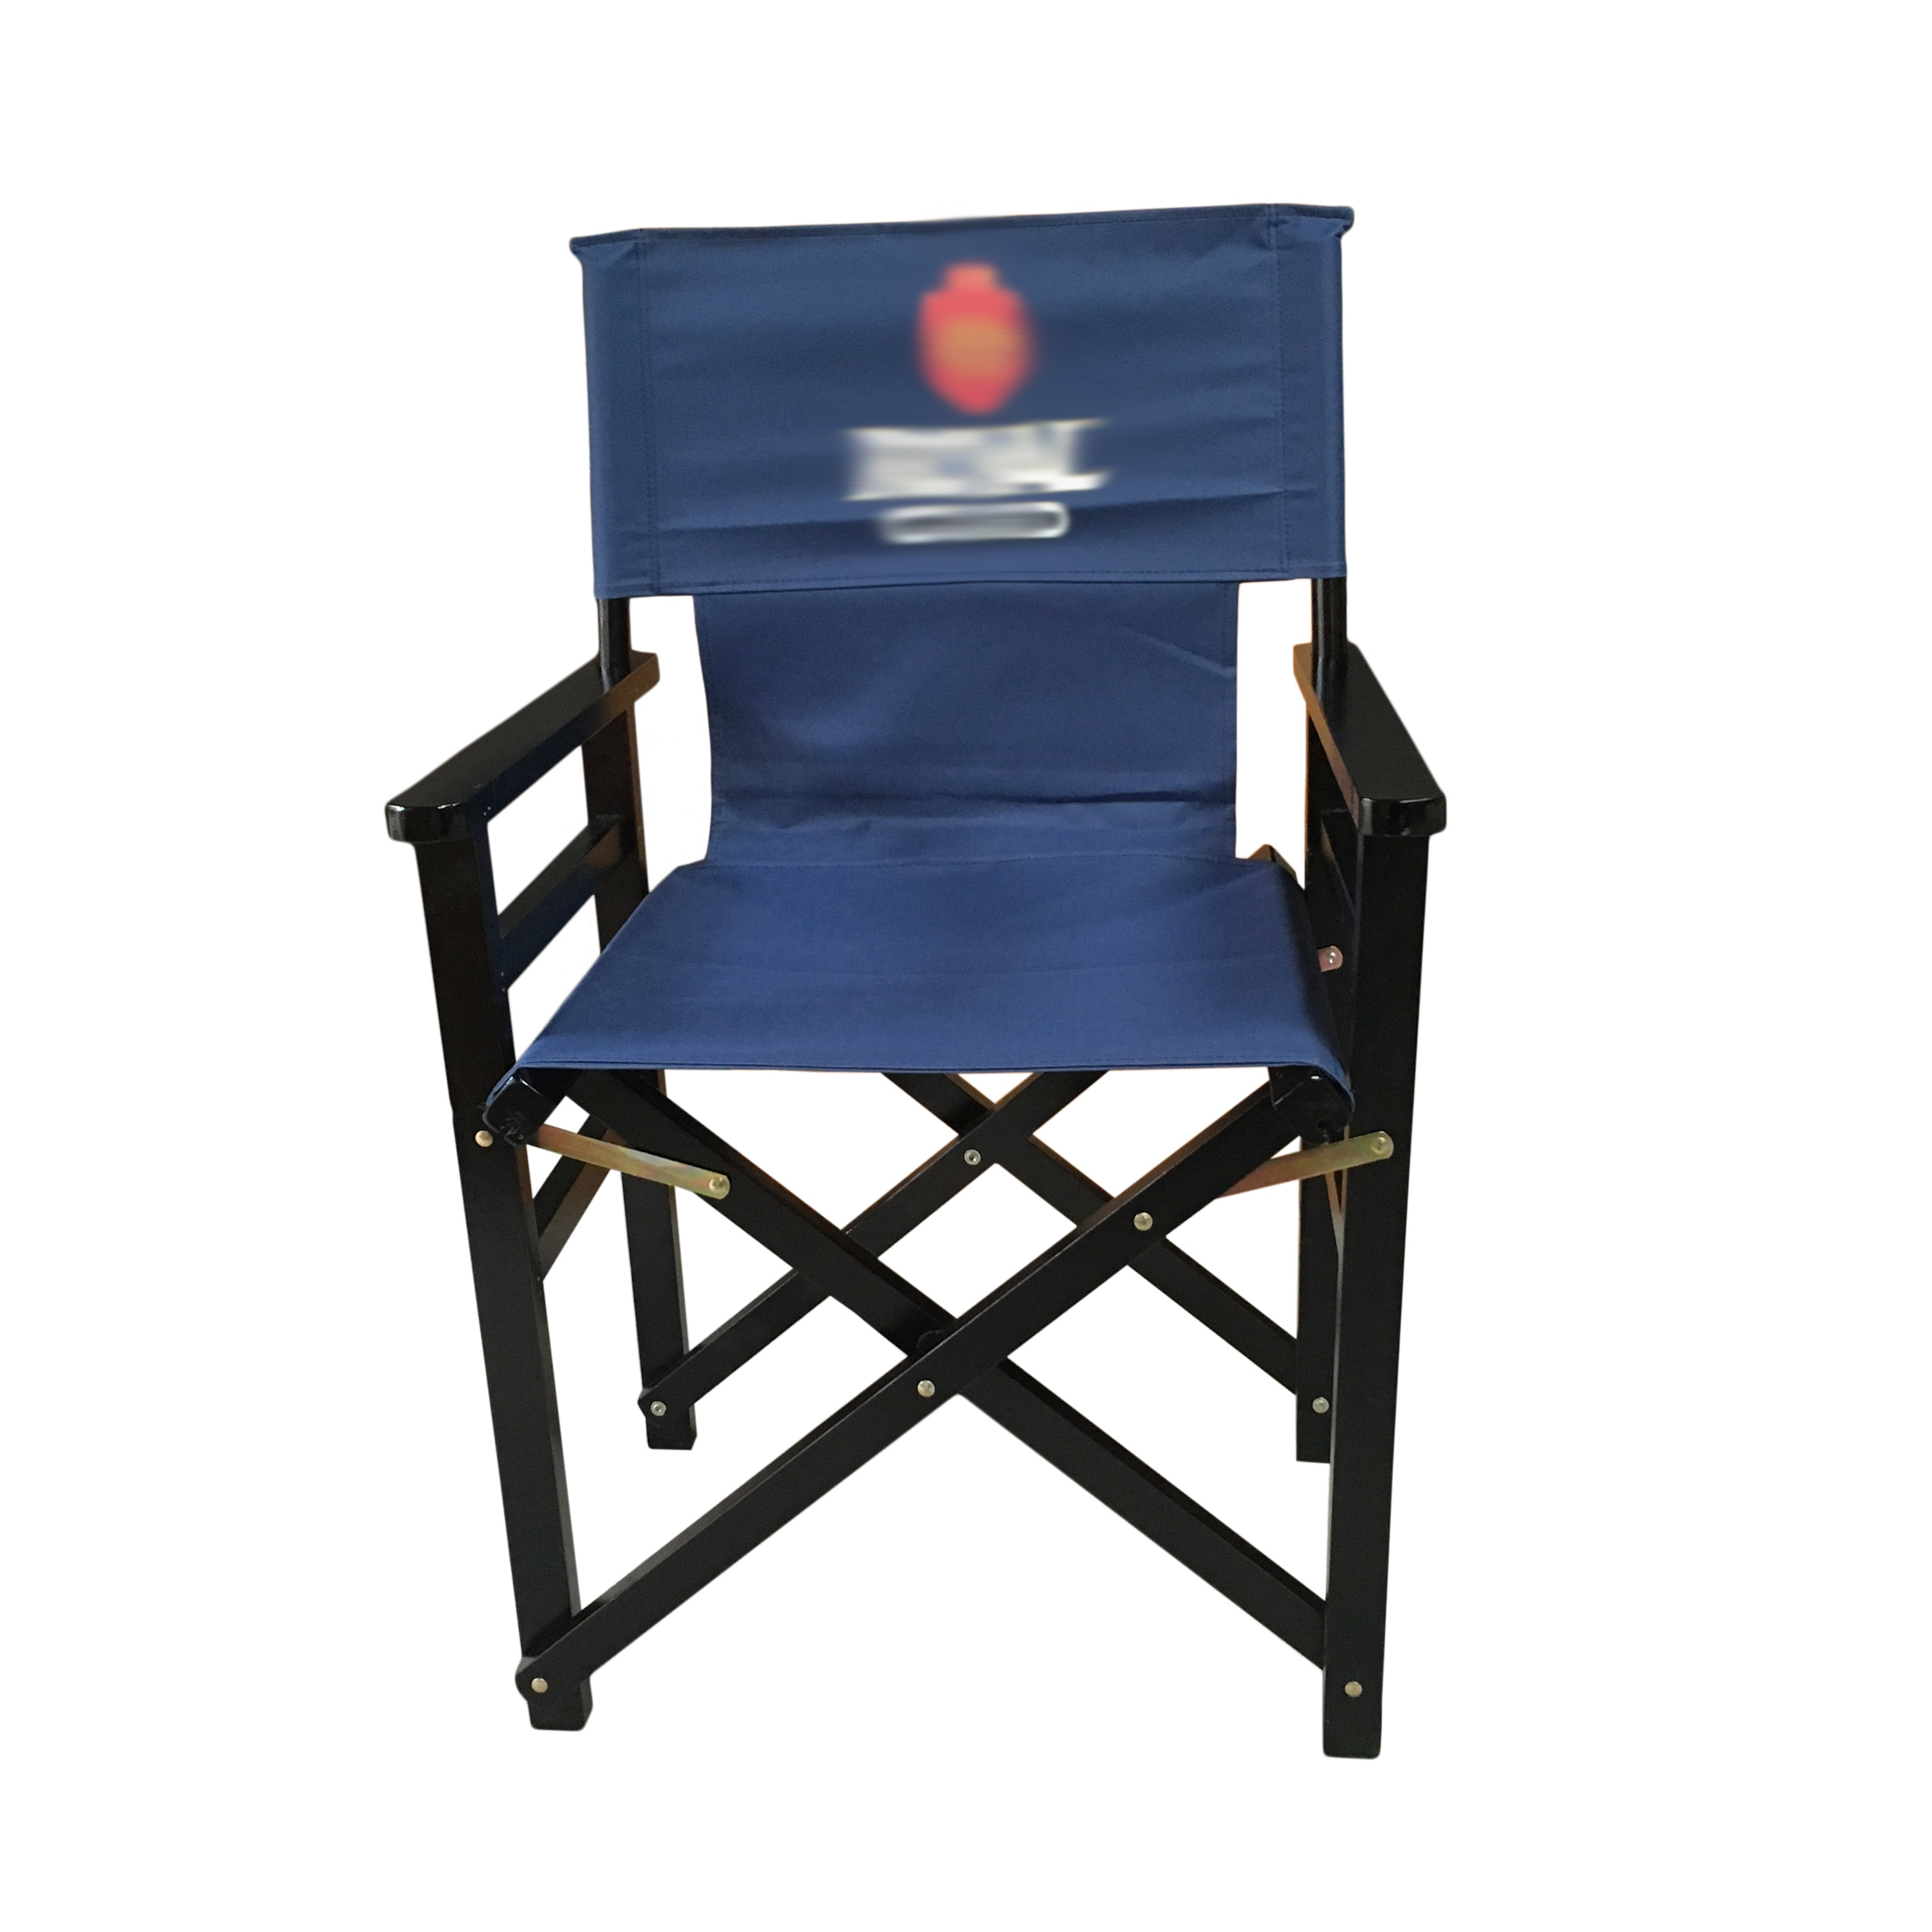 Foldable Patio Chairs He 393 Cheapest Wooden Director Chairs Wooden Folding Fishing Chairs Wooden Folding Garden Patio Chairs Buy Wooden Director Chair Wood Folding